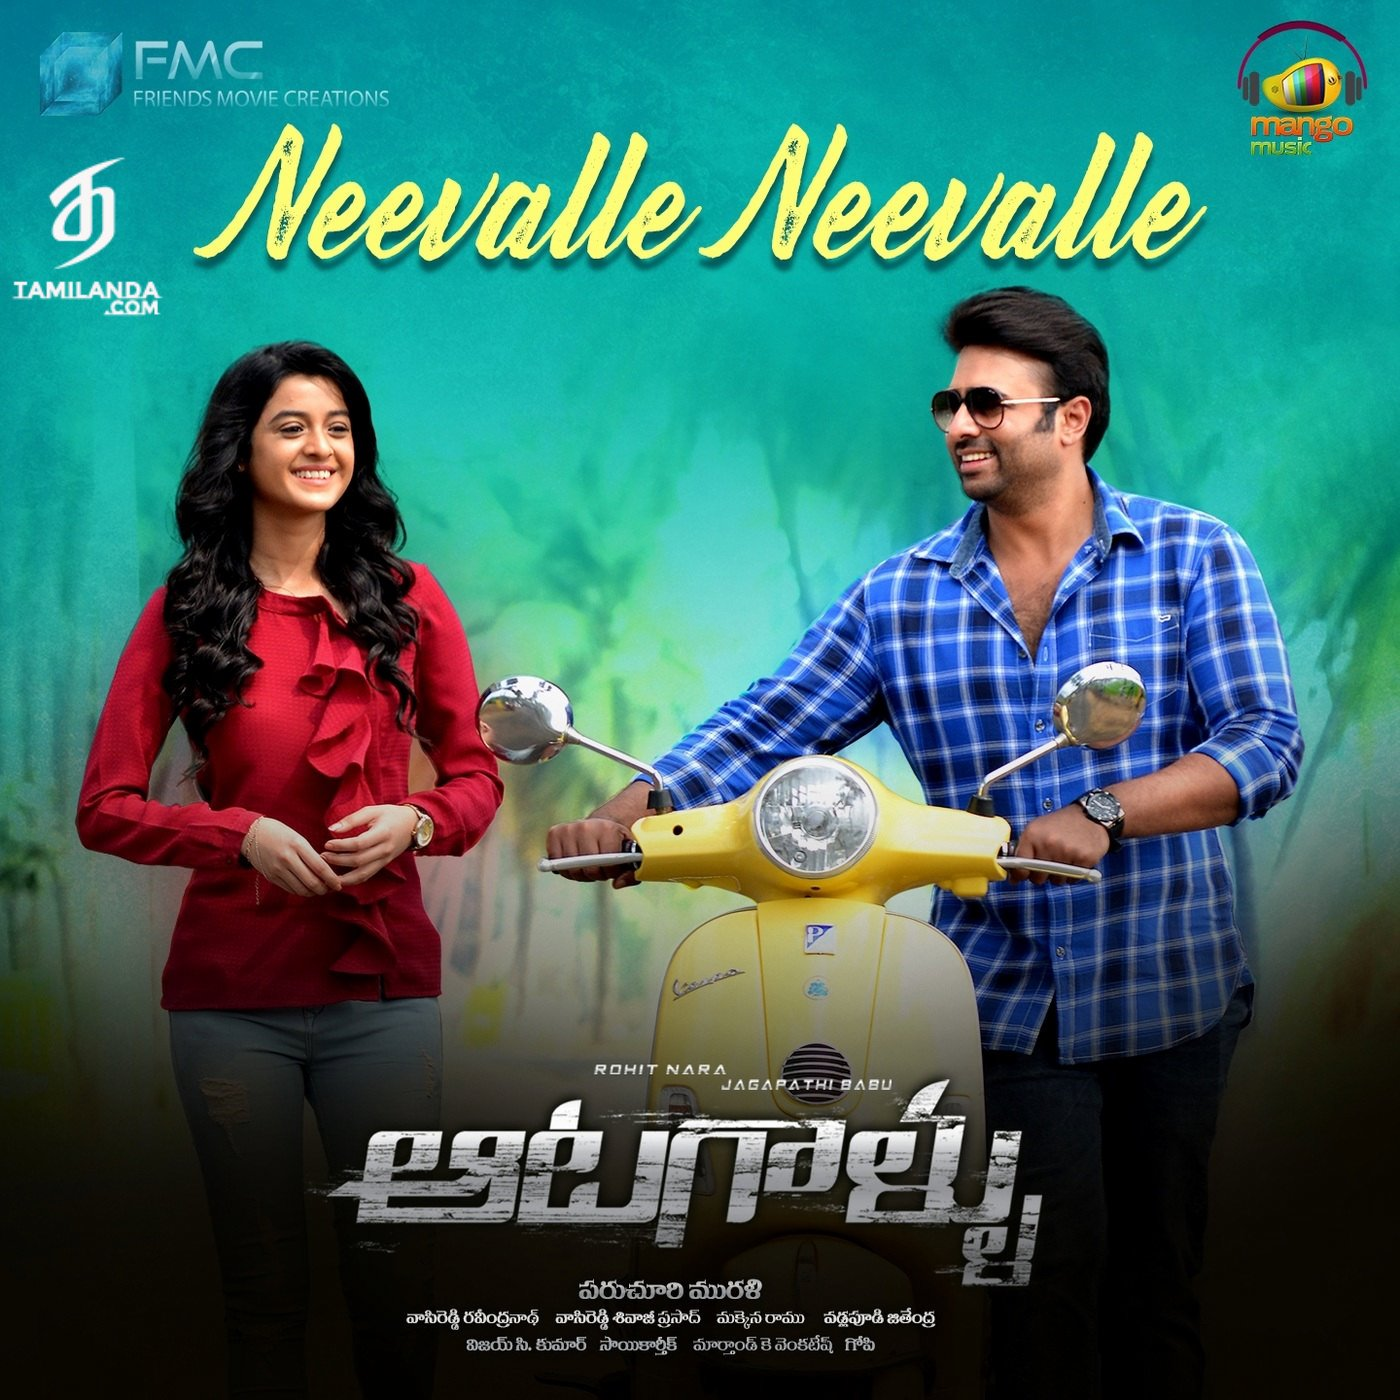 Neevalle Neevalle (From Aatagallu) (Single) FLAC Song